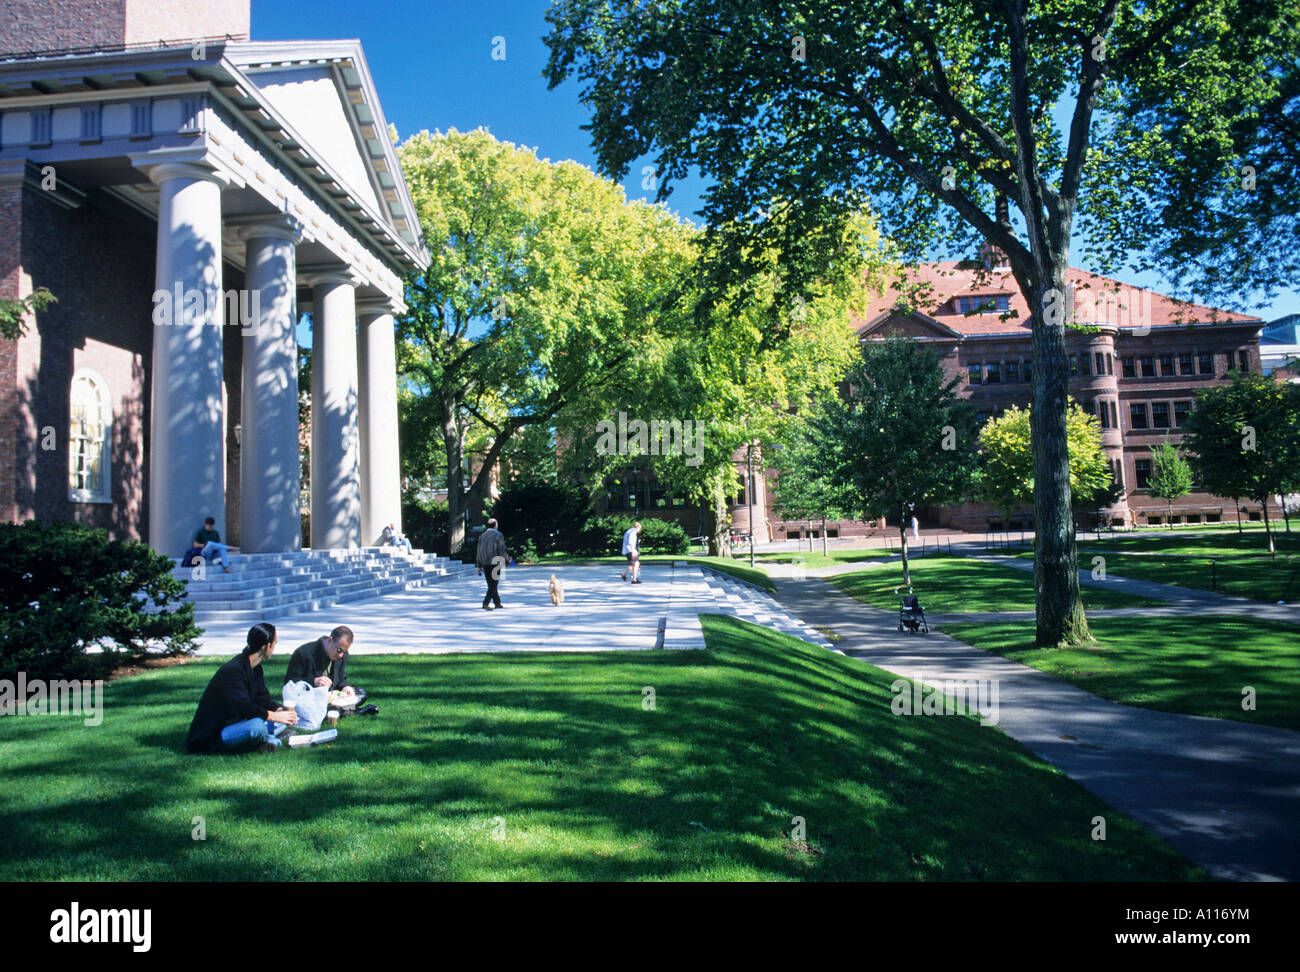 Students On The Lawns Outside Widener Memorial Library At Harvard University